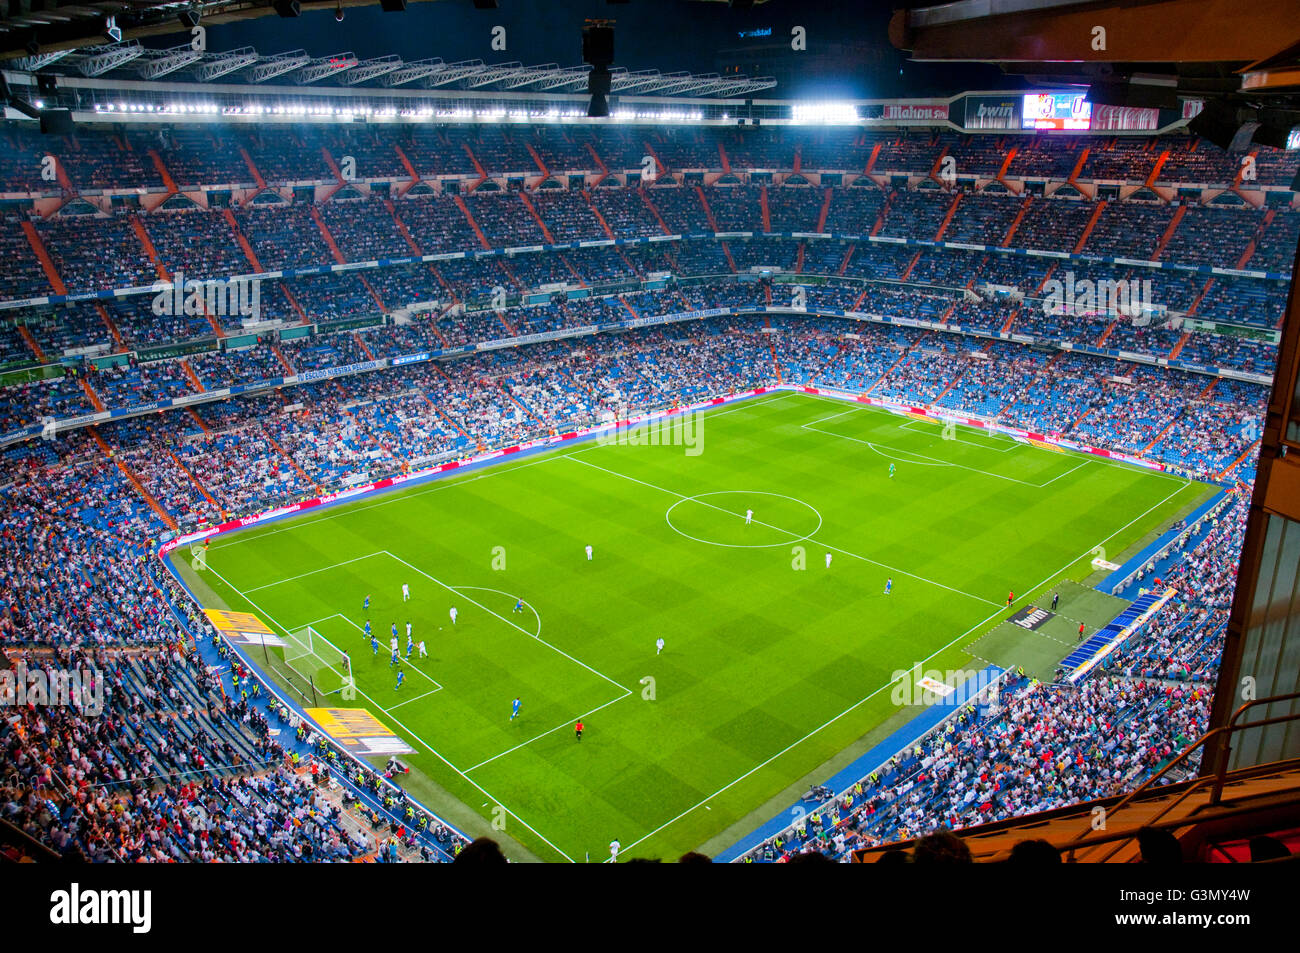 Match Real Madrid Versus Getafe Santiago Bernabeu Stadium Night Stock Photo Alamy